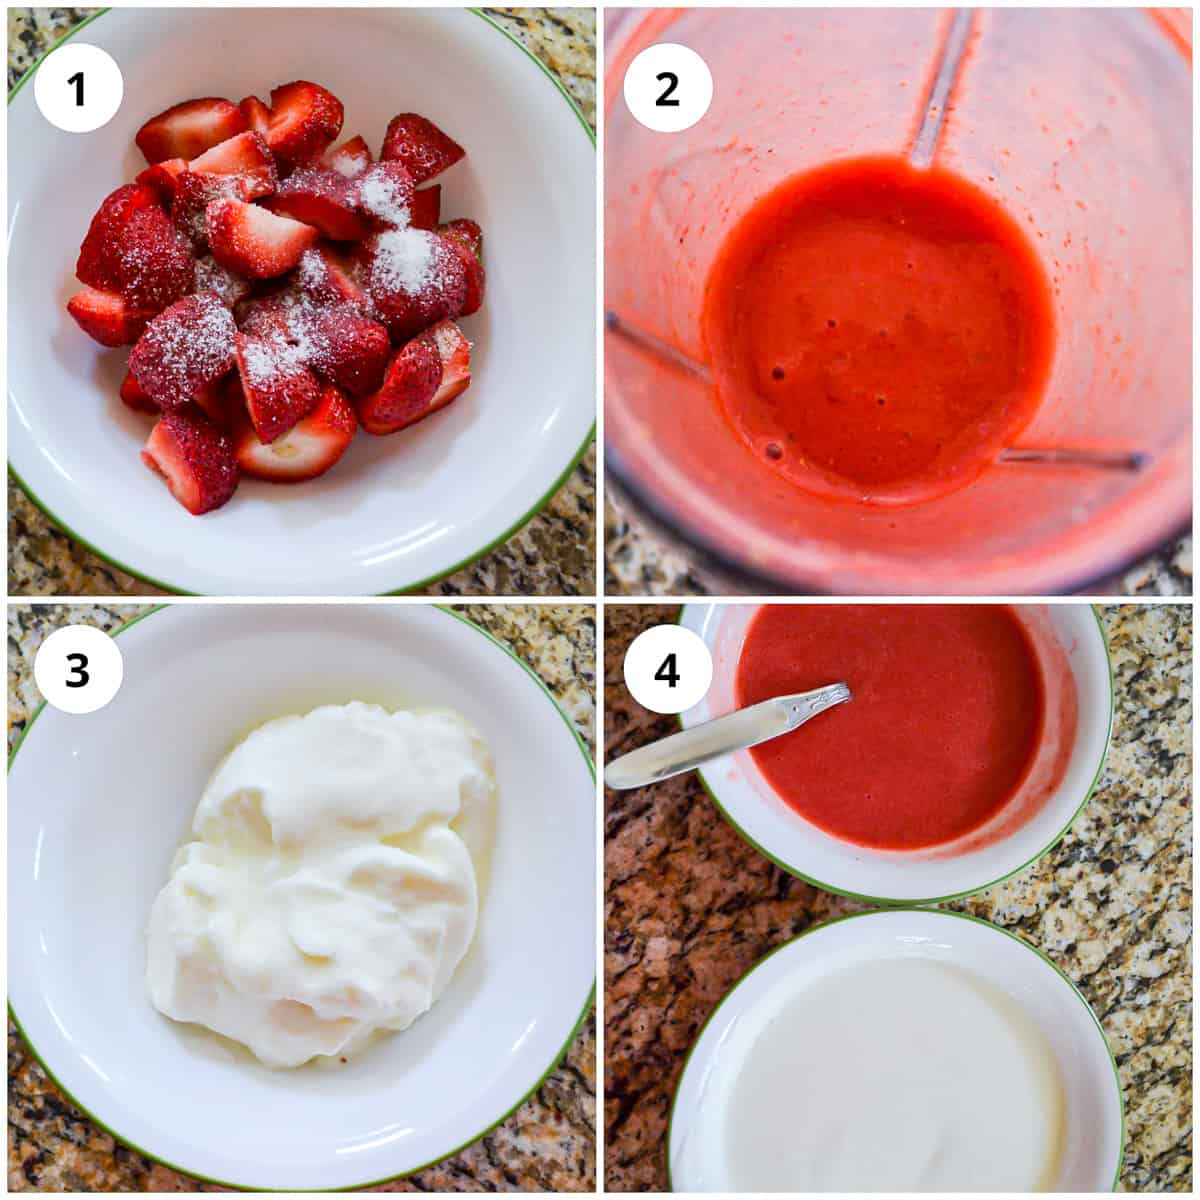 Preparing the strawberries for the popsicles